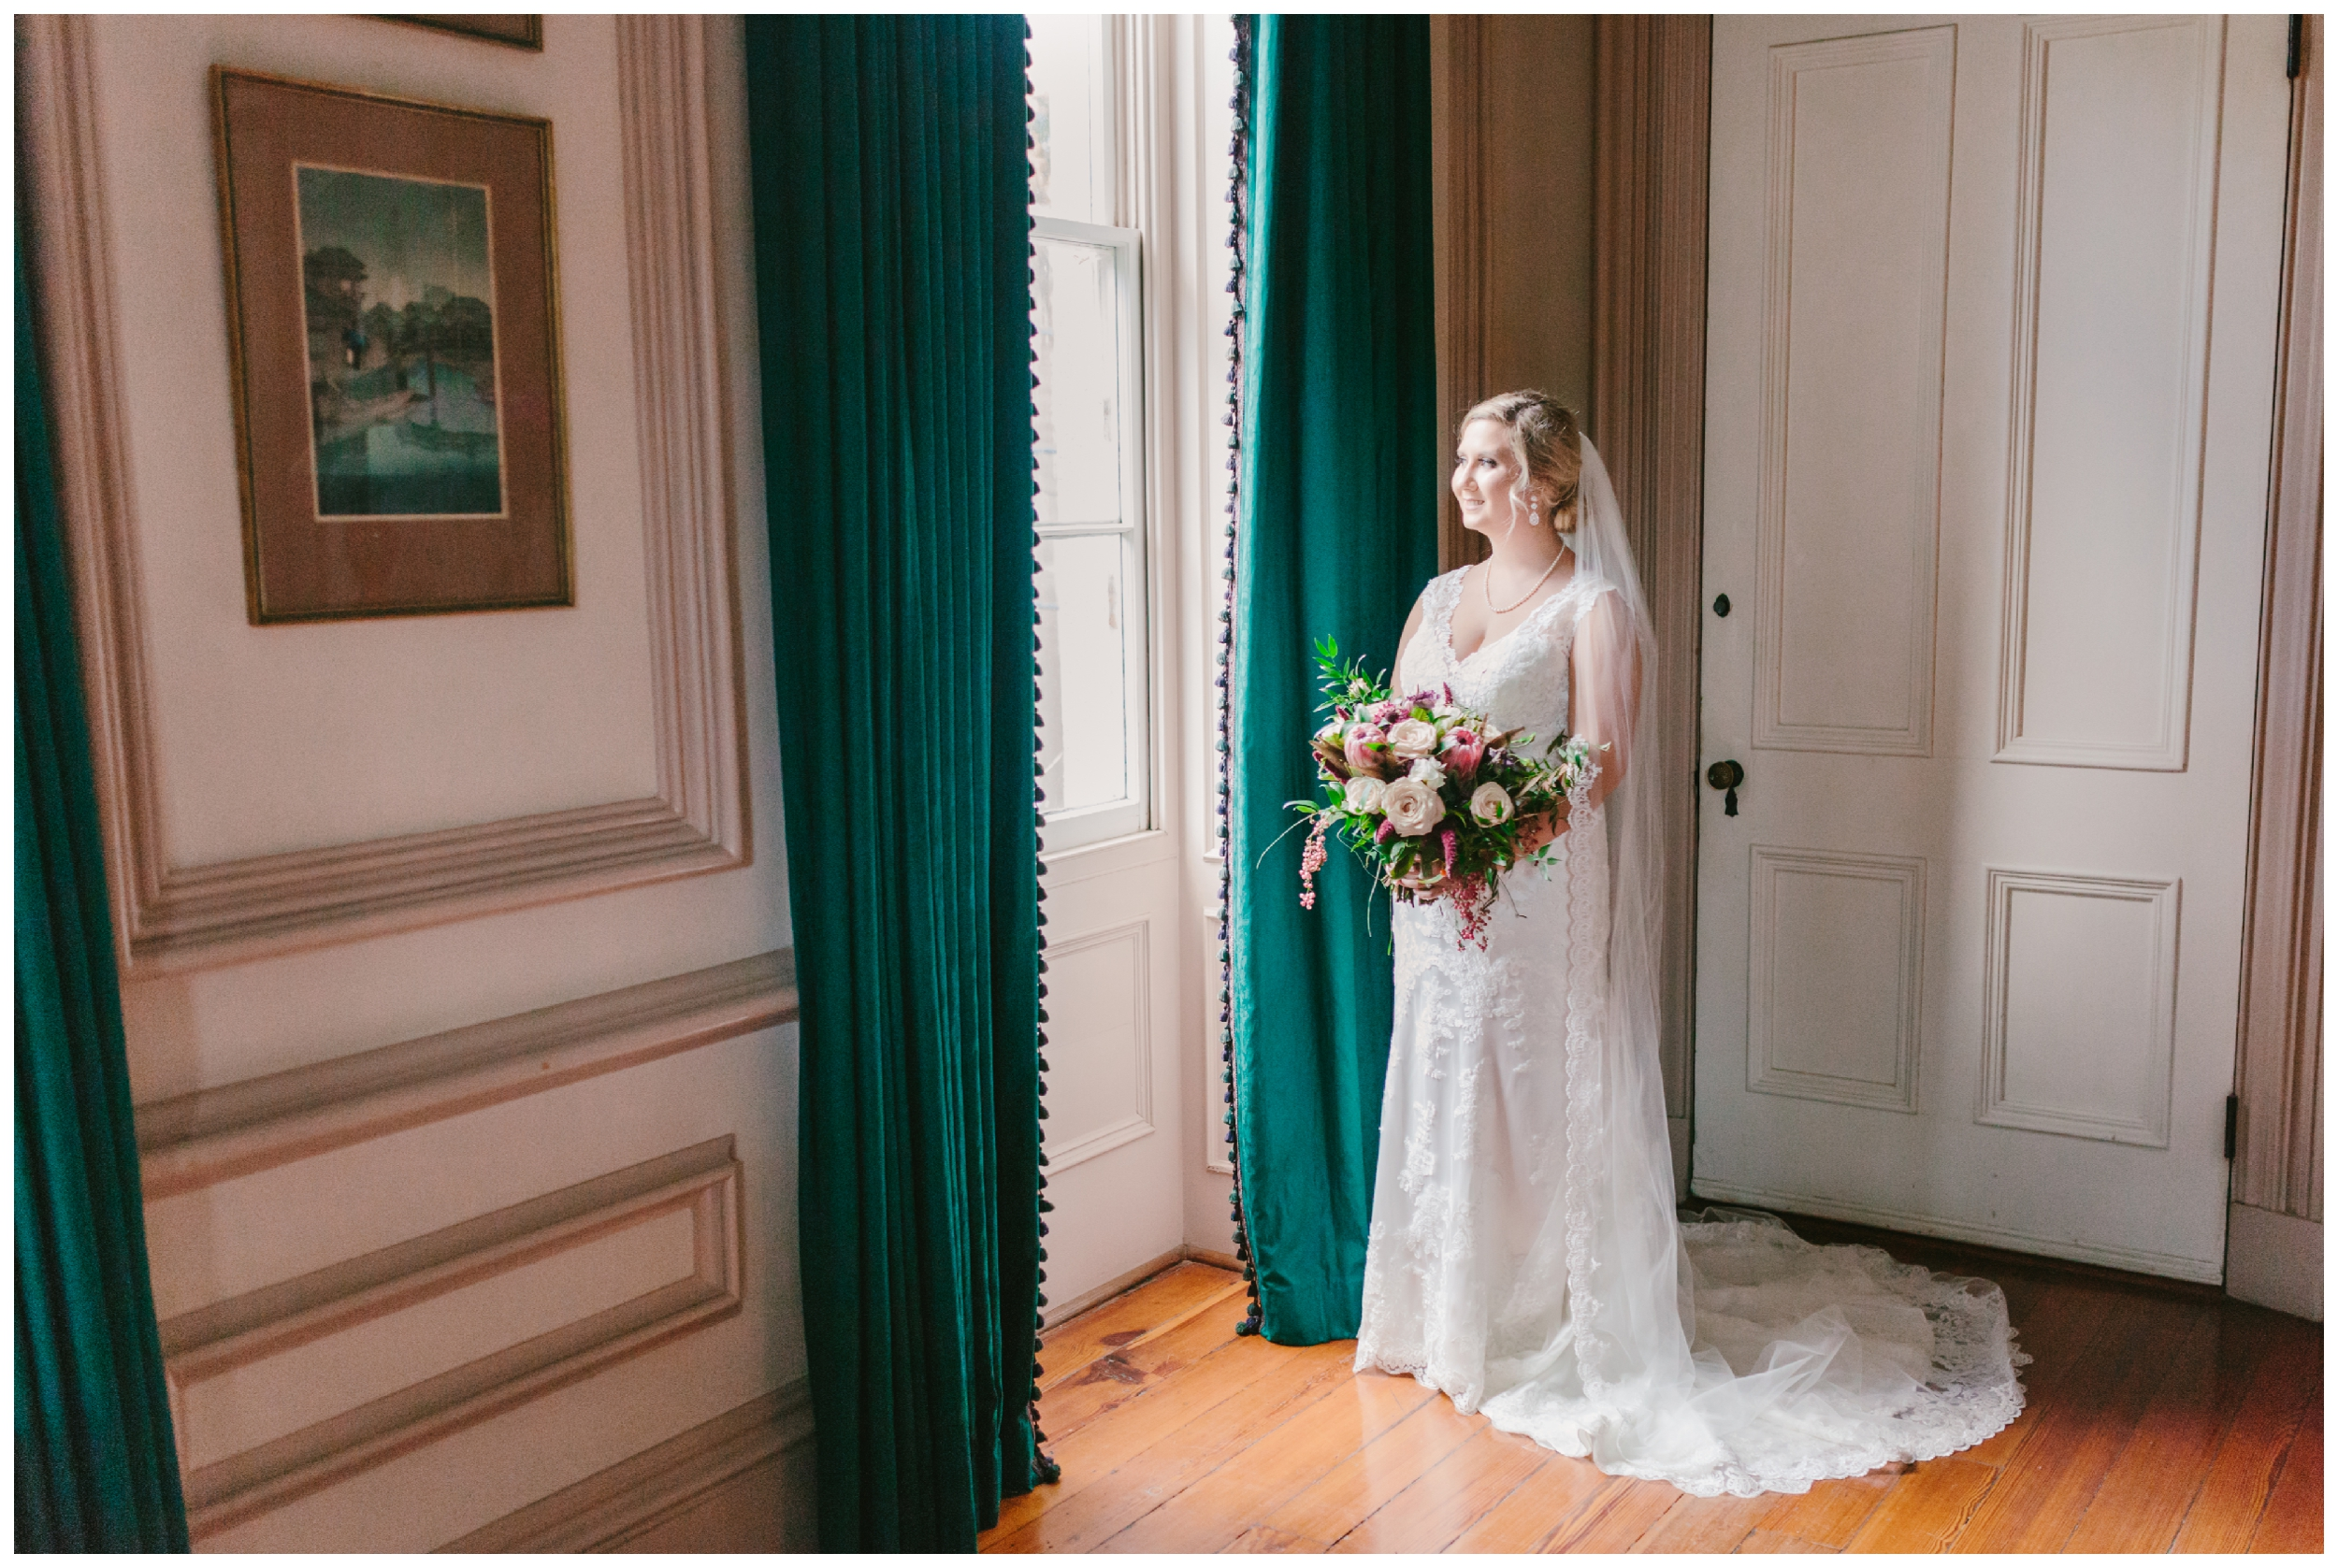 bridal portraits at mcbee house on the ashley hall campus.  floor to ceiling windows with teal treatments